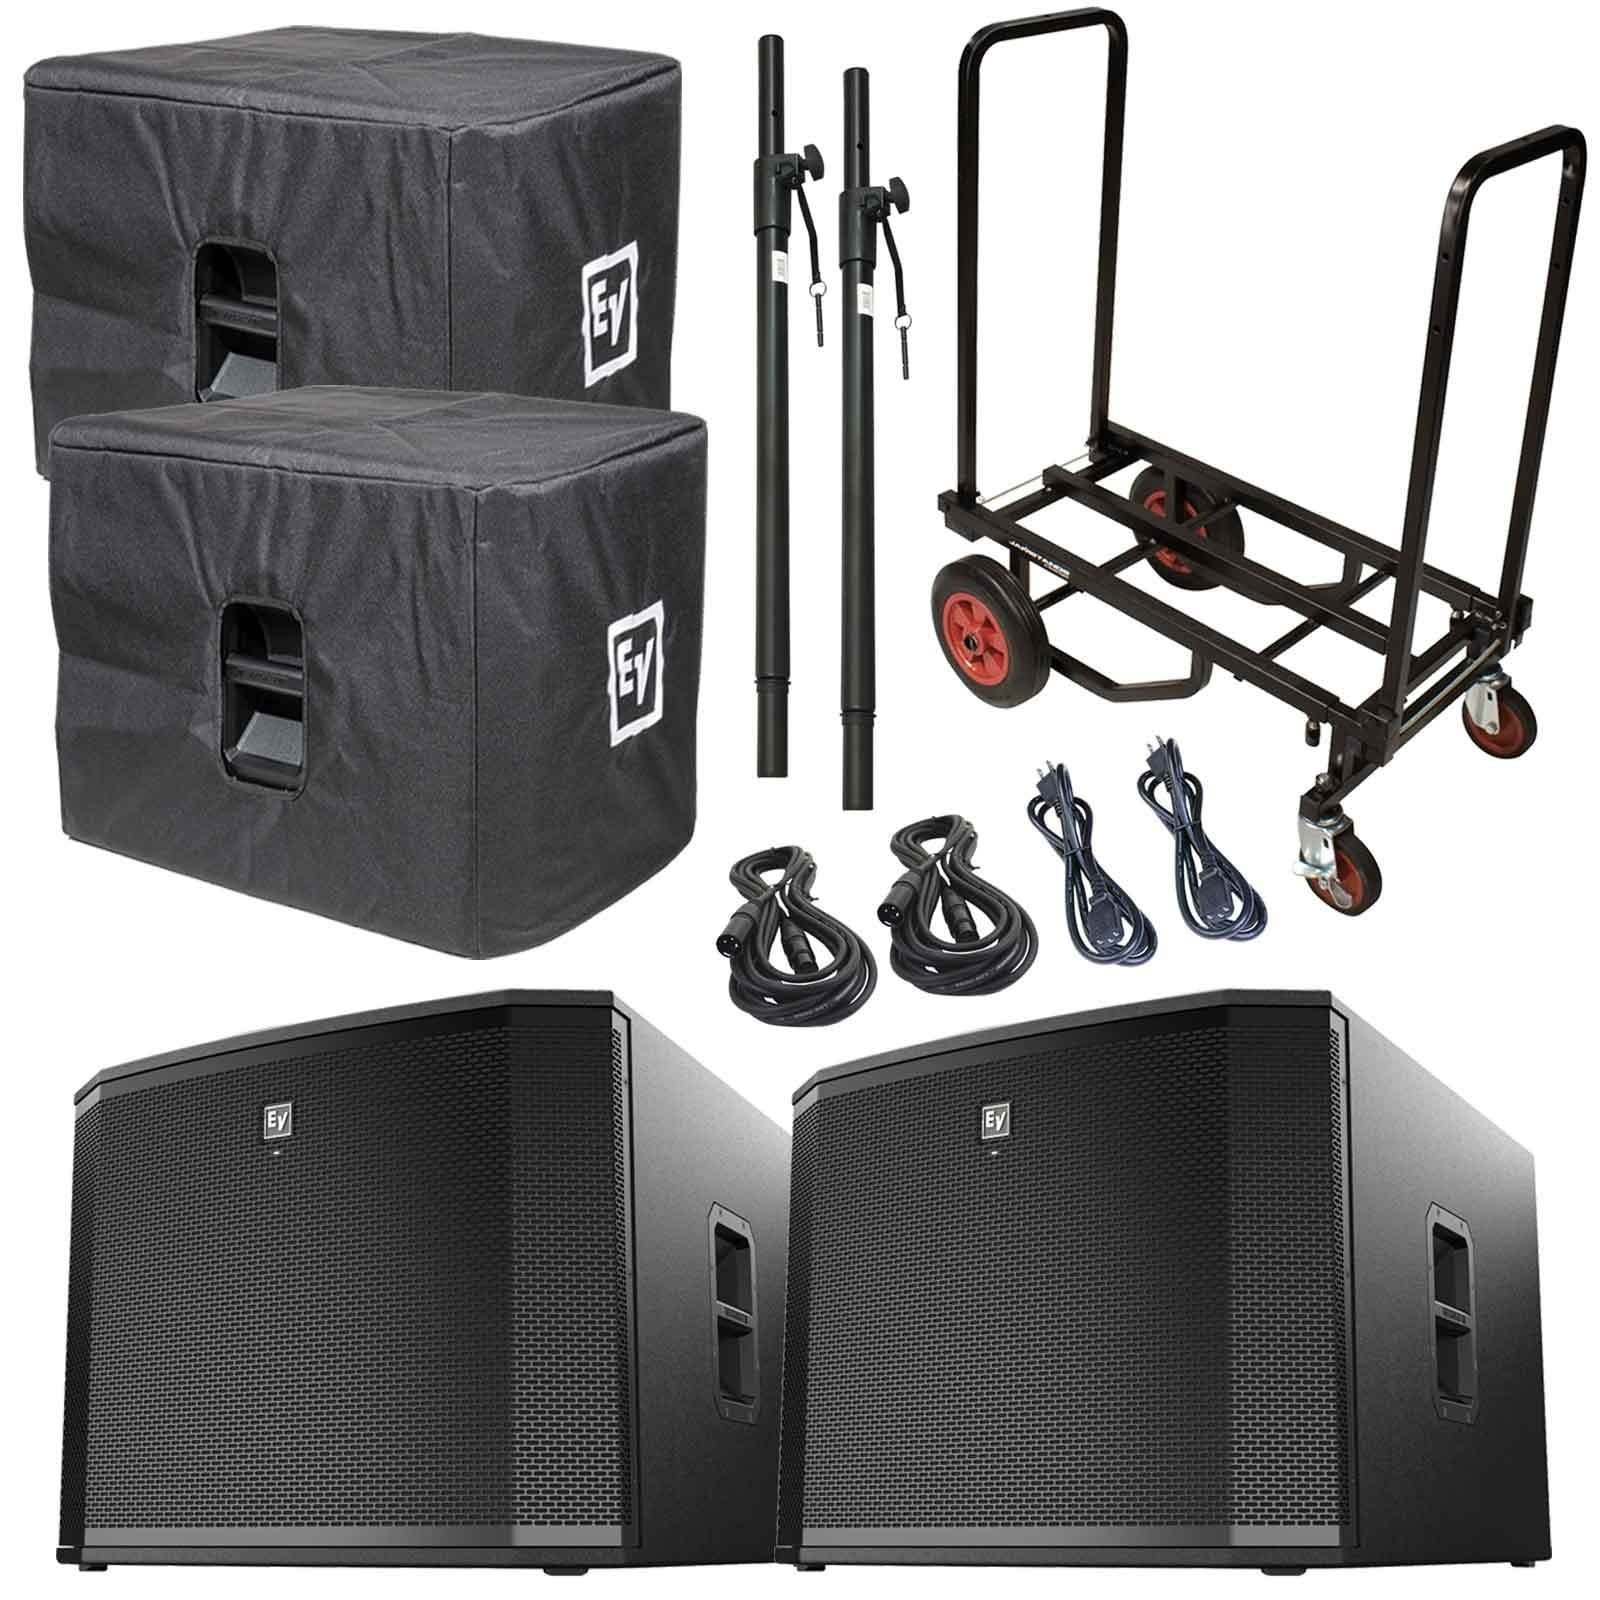 electro-voice-etx-18sp-18-powered-subwoofer-package-3c0.jpg